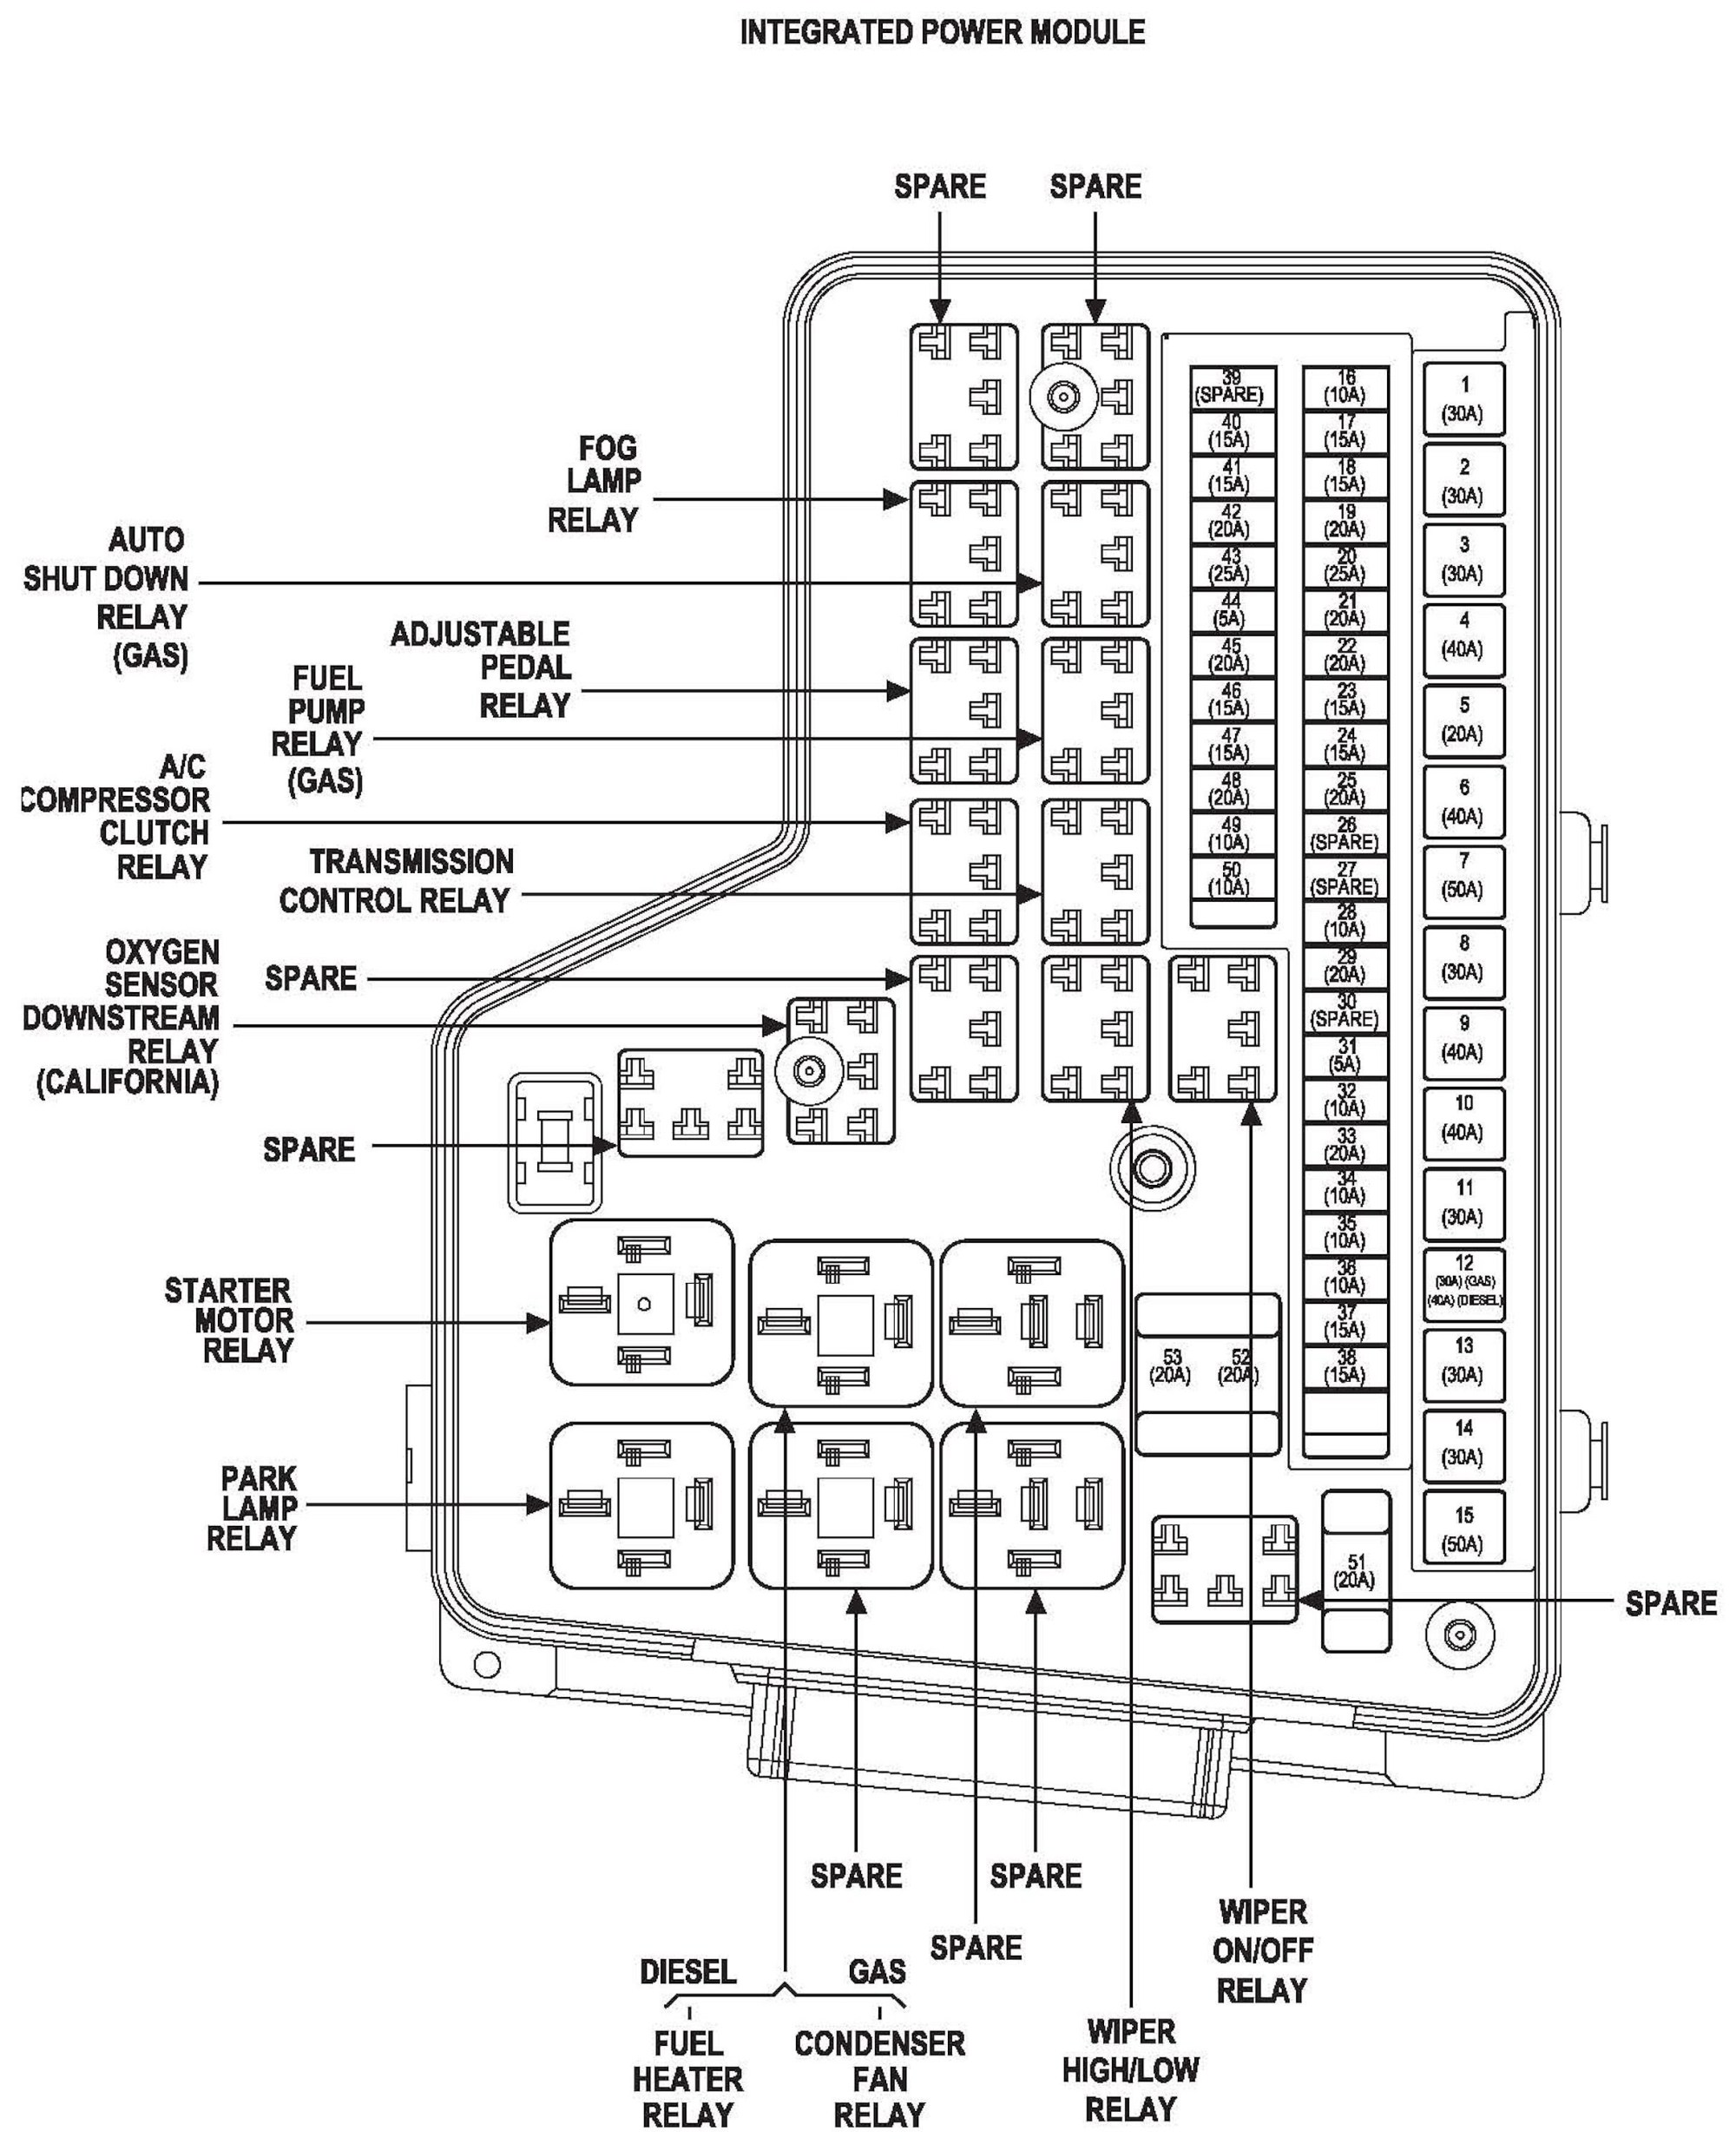 hight resolution of 2004 dodge ram 3500 fuse box diagram wiring diagram third level 05 dodge durango fuse diagram